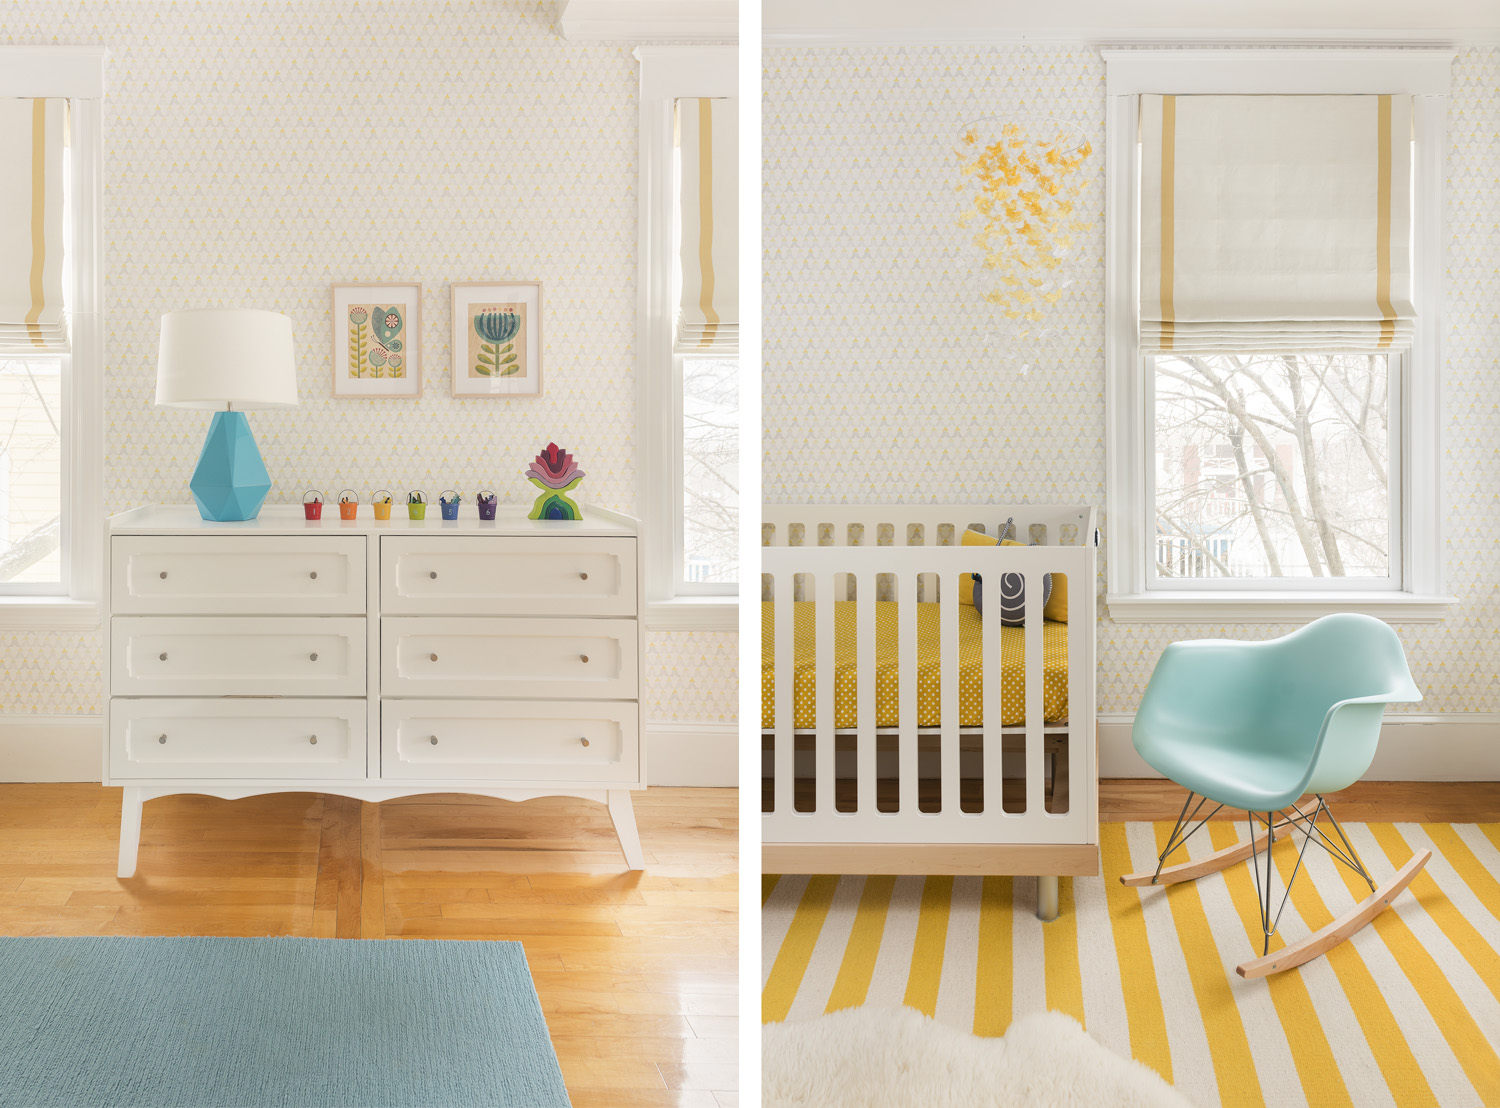 mandarina studio_yellow and gray aqua nursery interior design_3.jpg